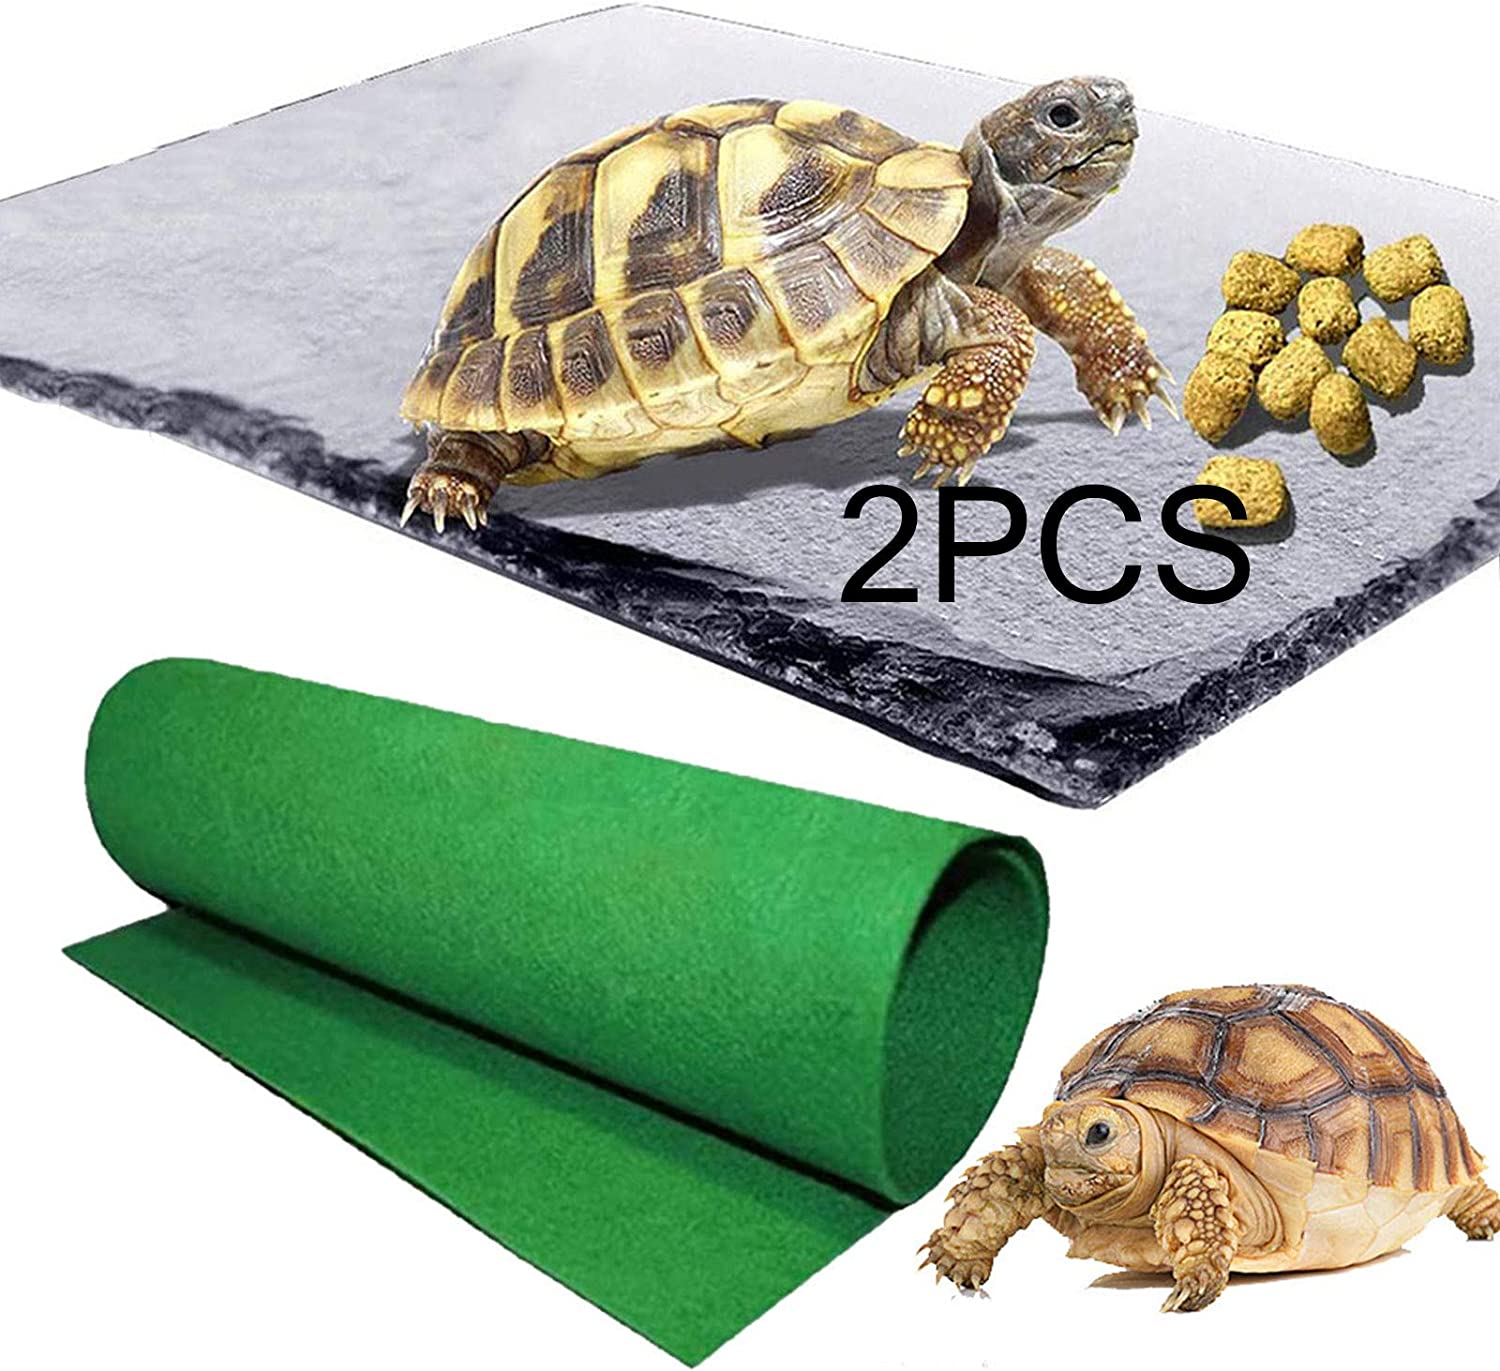 Reptile Basking Platform Tortoise Rock Plate Reptile Carpet Tortoise Feeding Plate Bowl Turtle Bathing Area Feeding Food Dish Resting Terrace for Lizard Bearded Dragon Turtle Crested Gecko Snake 2pcs